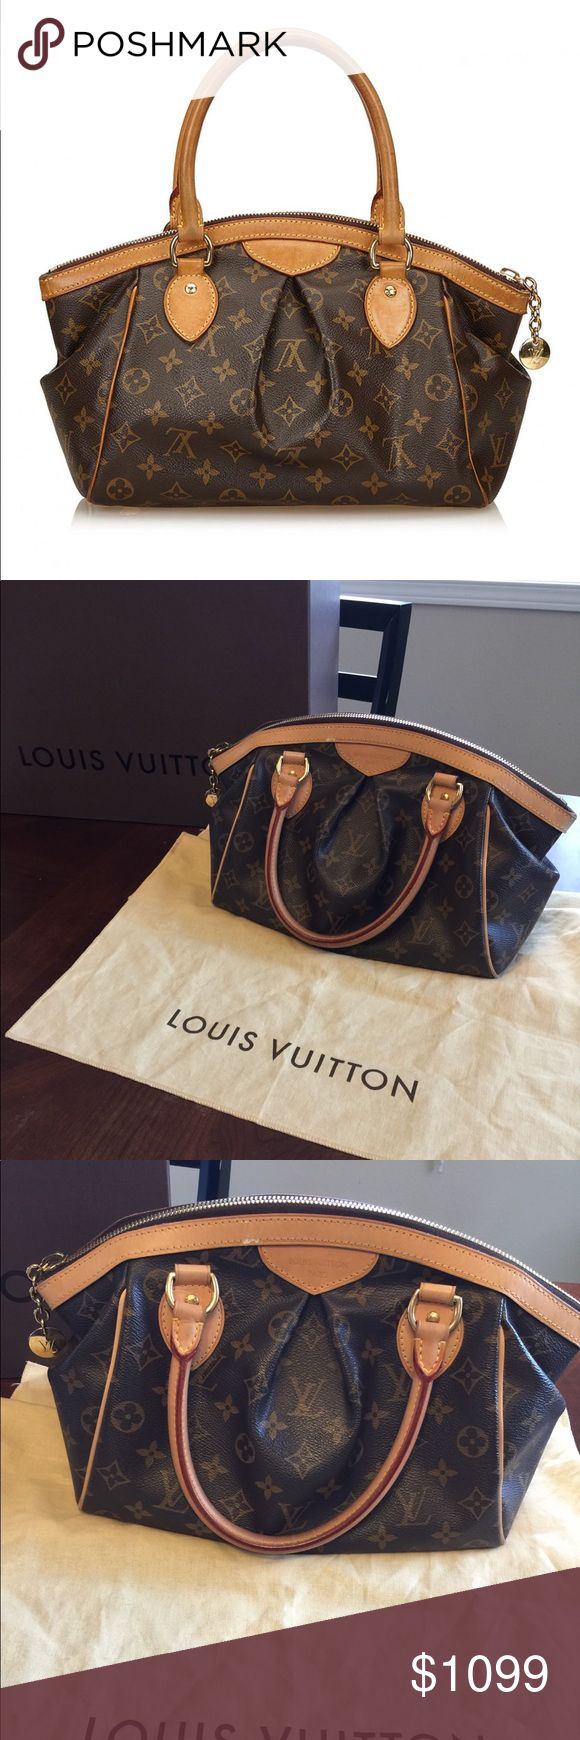 """louis vuitton tivoli Bag The tivoli features a monogram body, rolled leather straps, top zip closure, and interior slip pockets. Item Dimensions: length 36 cm width 21 cm depth 16 cm hand drop 5.5"""" dust bag louis vuitton pieces do not come with an authenticity card— date code Excellent clean condition authentic maybe used 1-2 times Louis Vuitton Bags Satchels"""